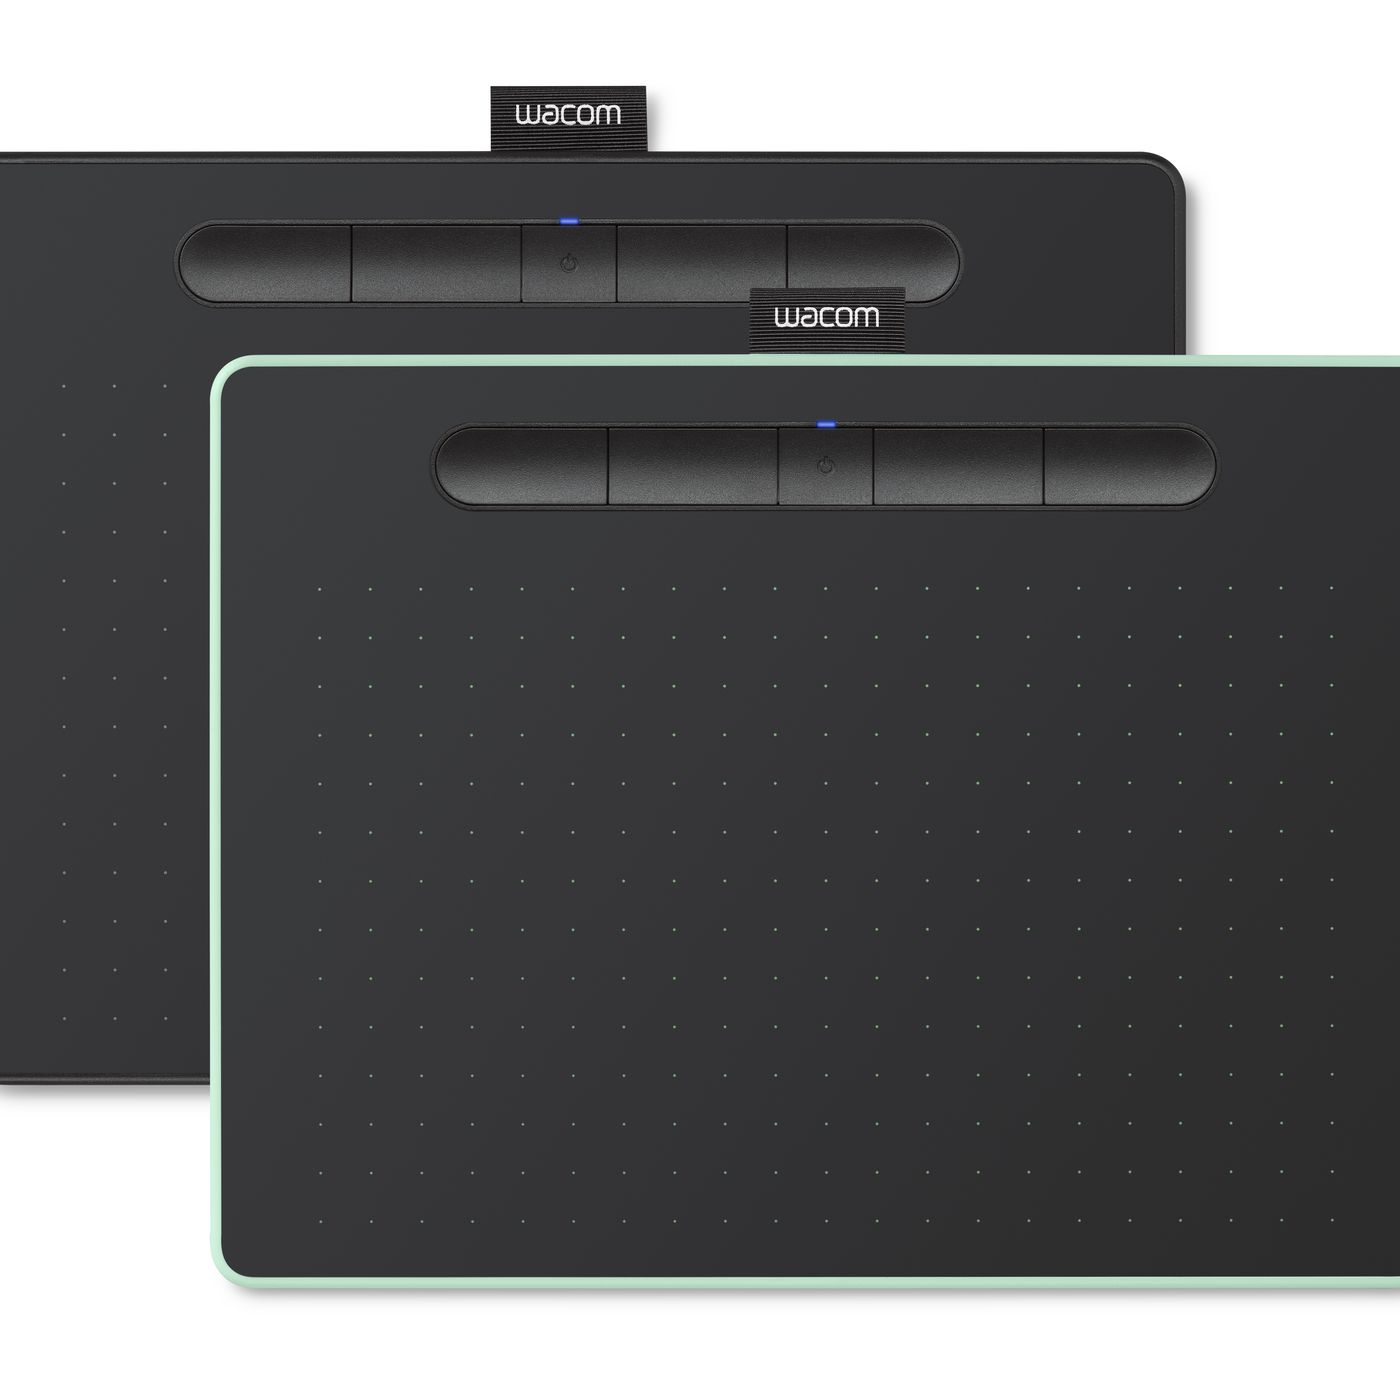 wacom s new intuos tablets are perfect for the beginner doodler